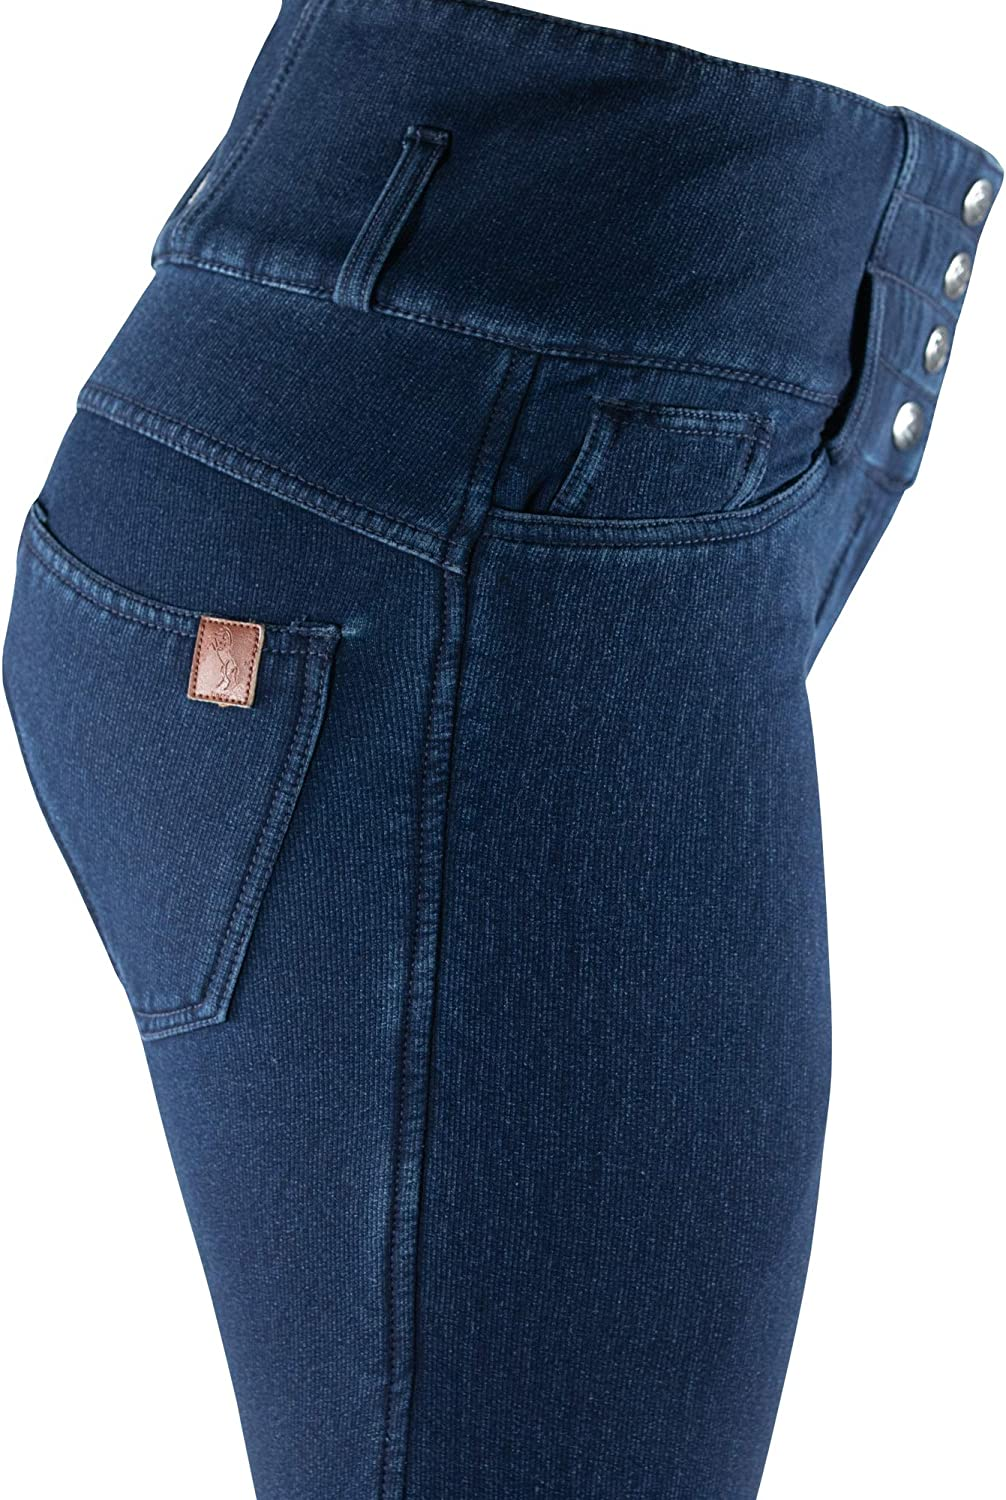 Horze Womens Limited Edition Kacy Full Seat Breeches Denim